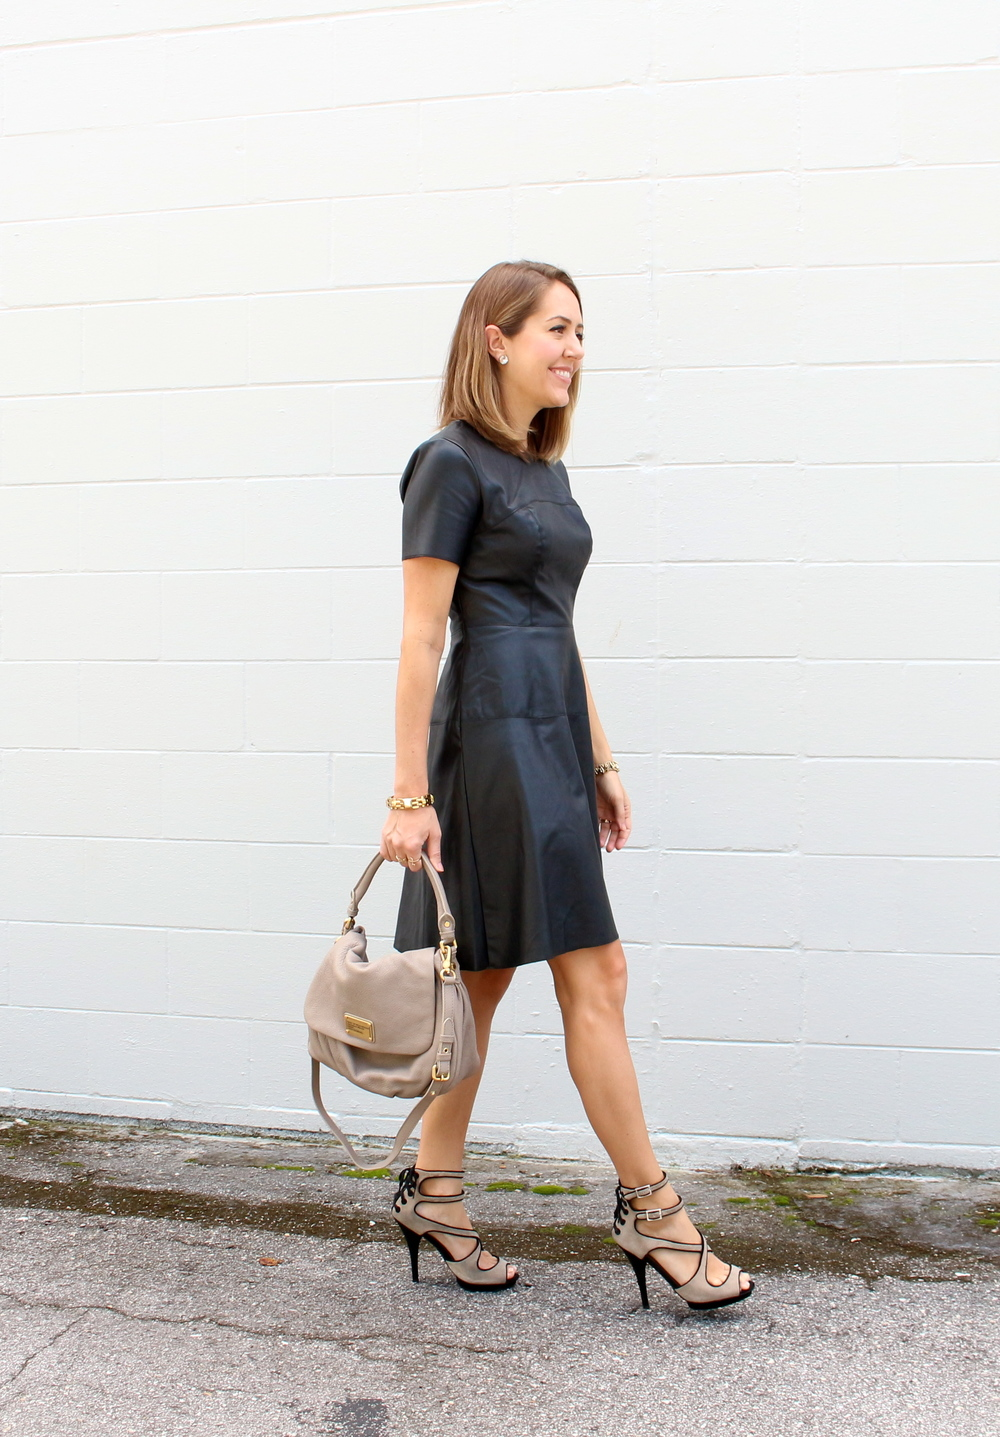 Leather dress $22, shoes $30